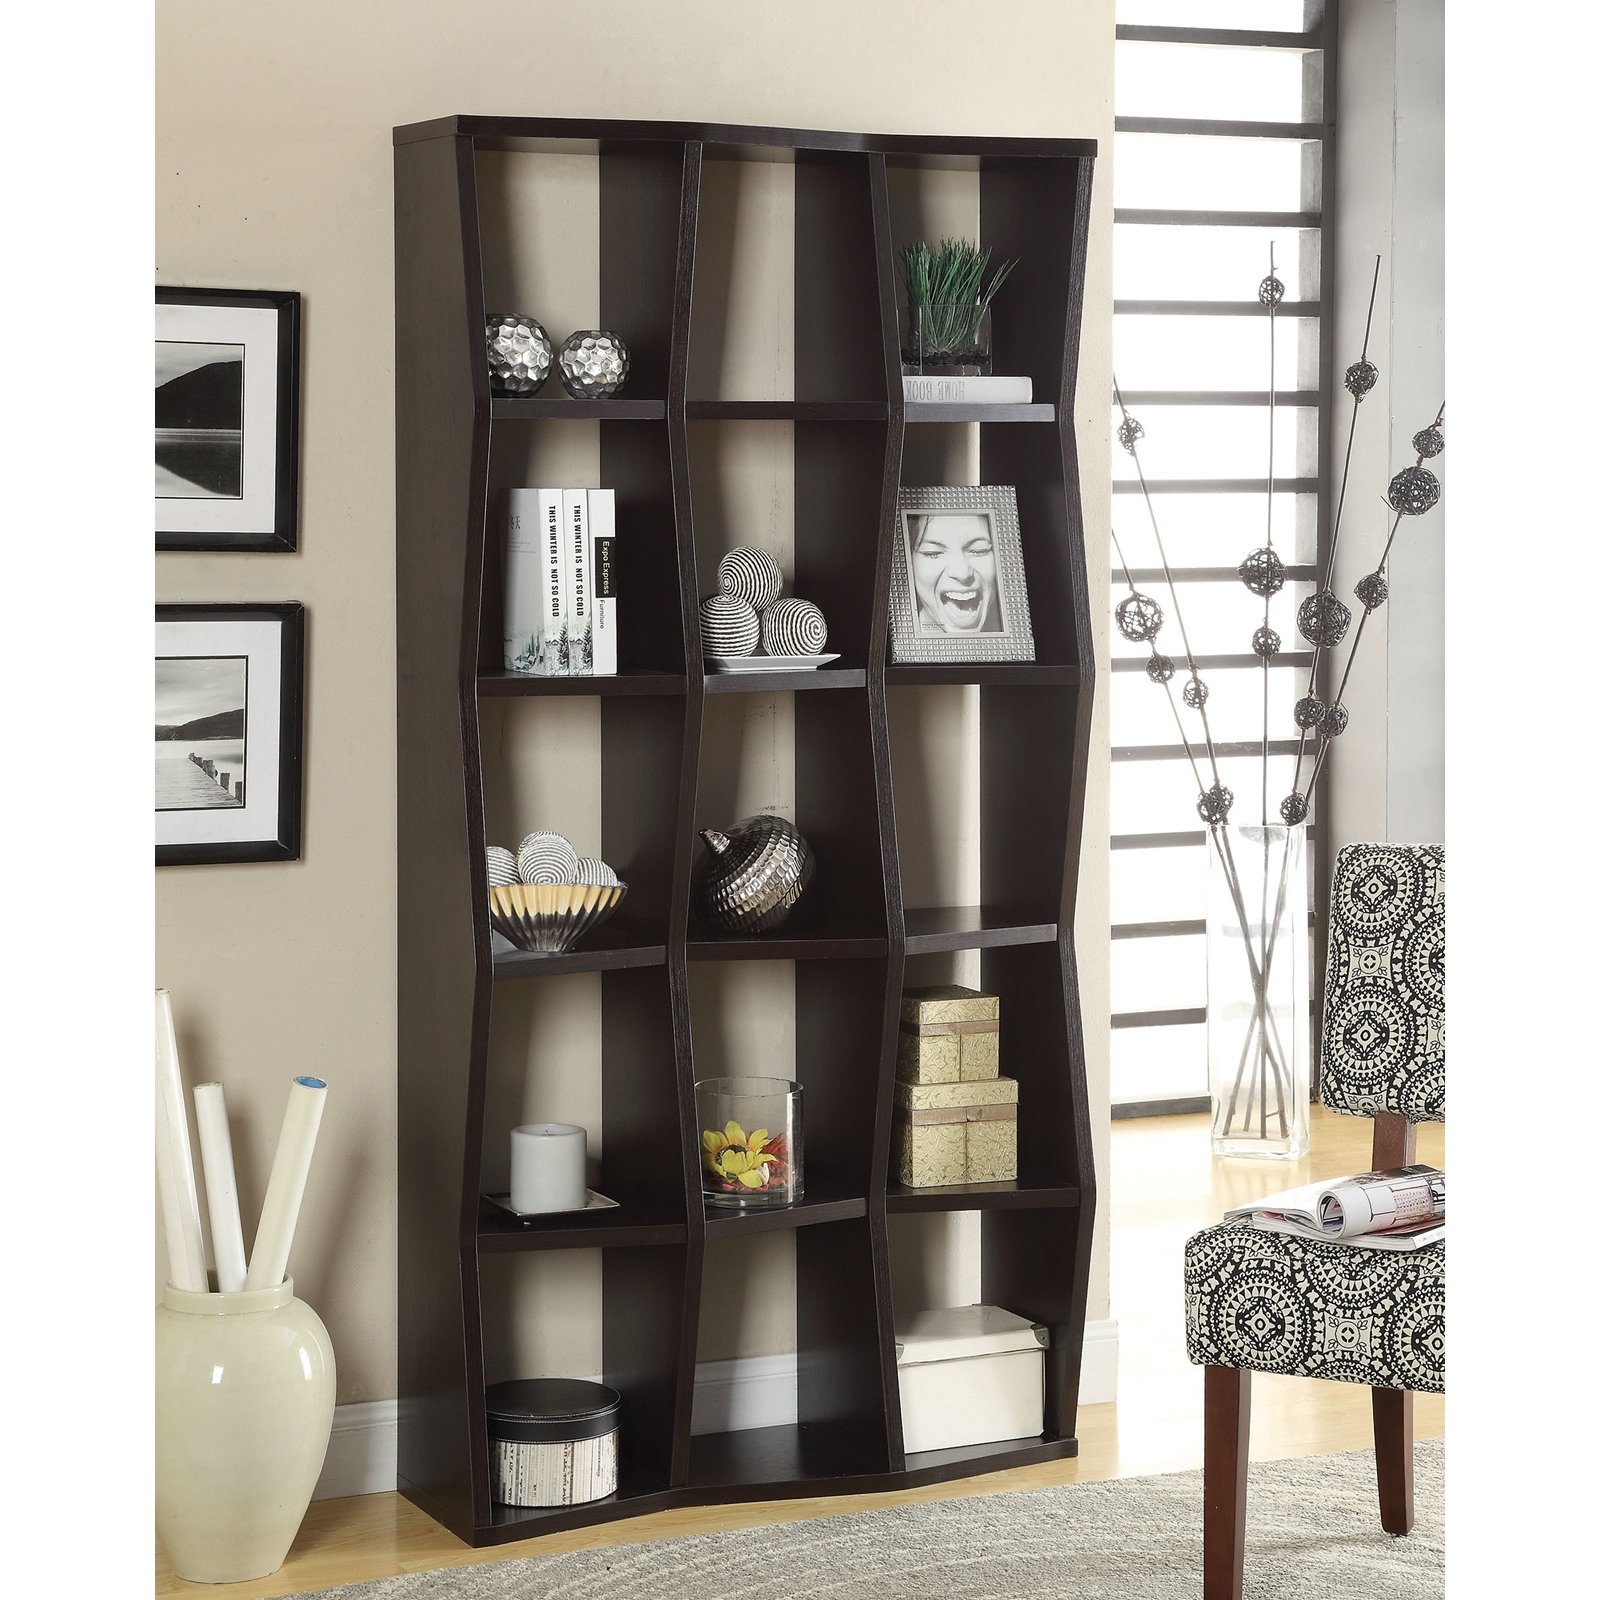 re interior home diy bookshelf bookcase do decorating lifeabsorbed backless ikea decoration